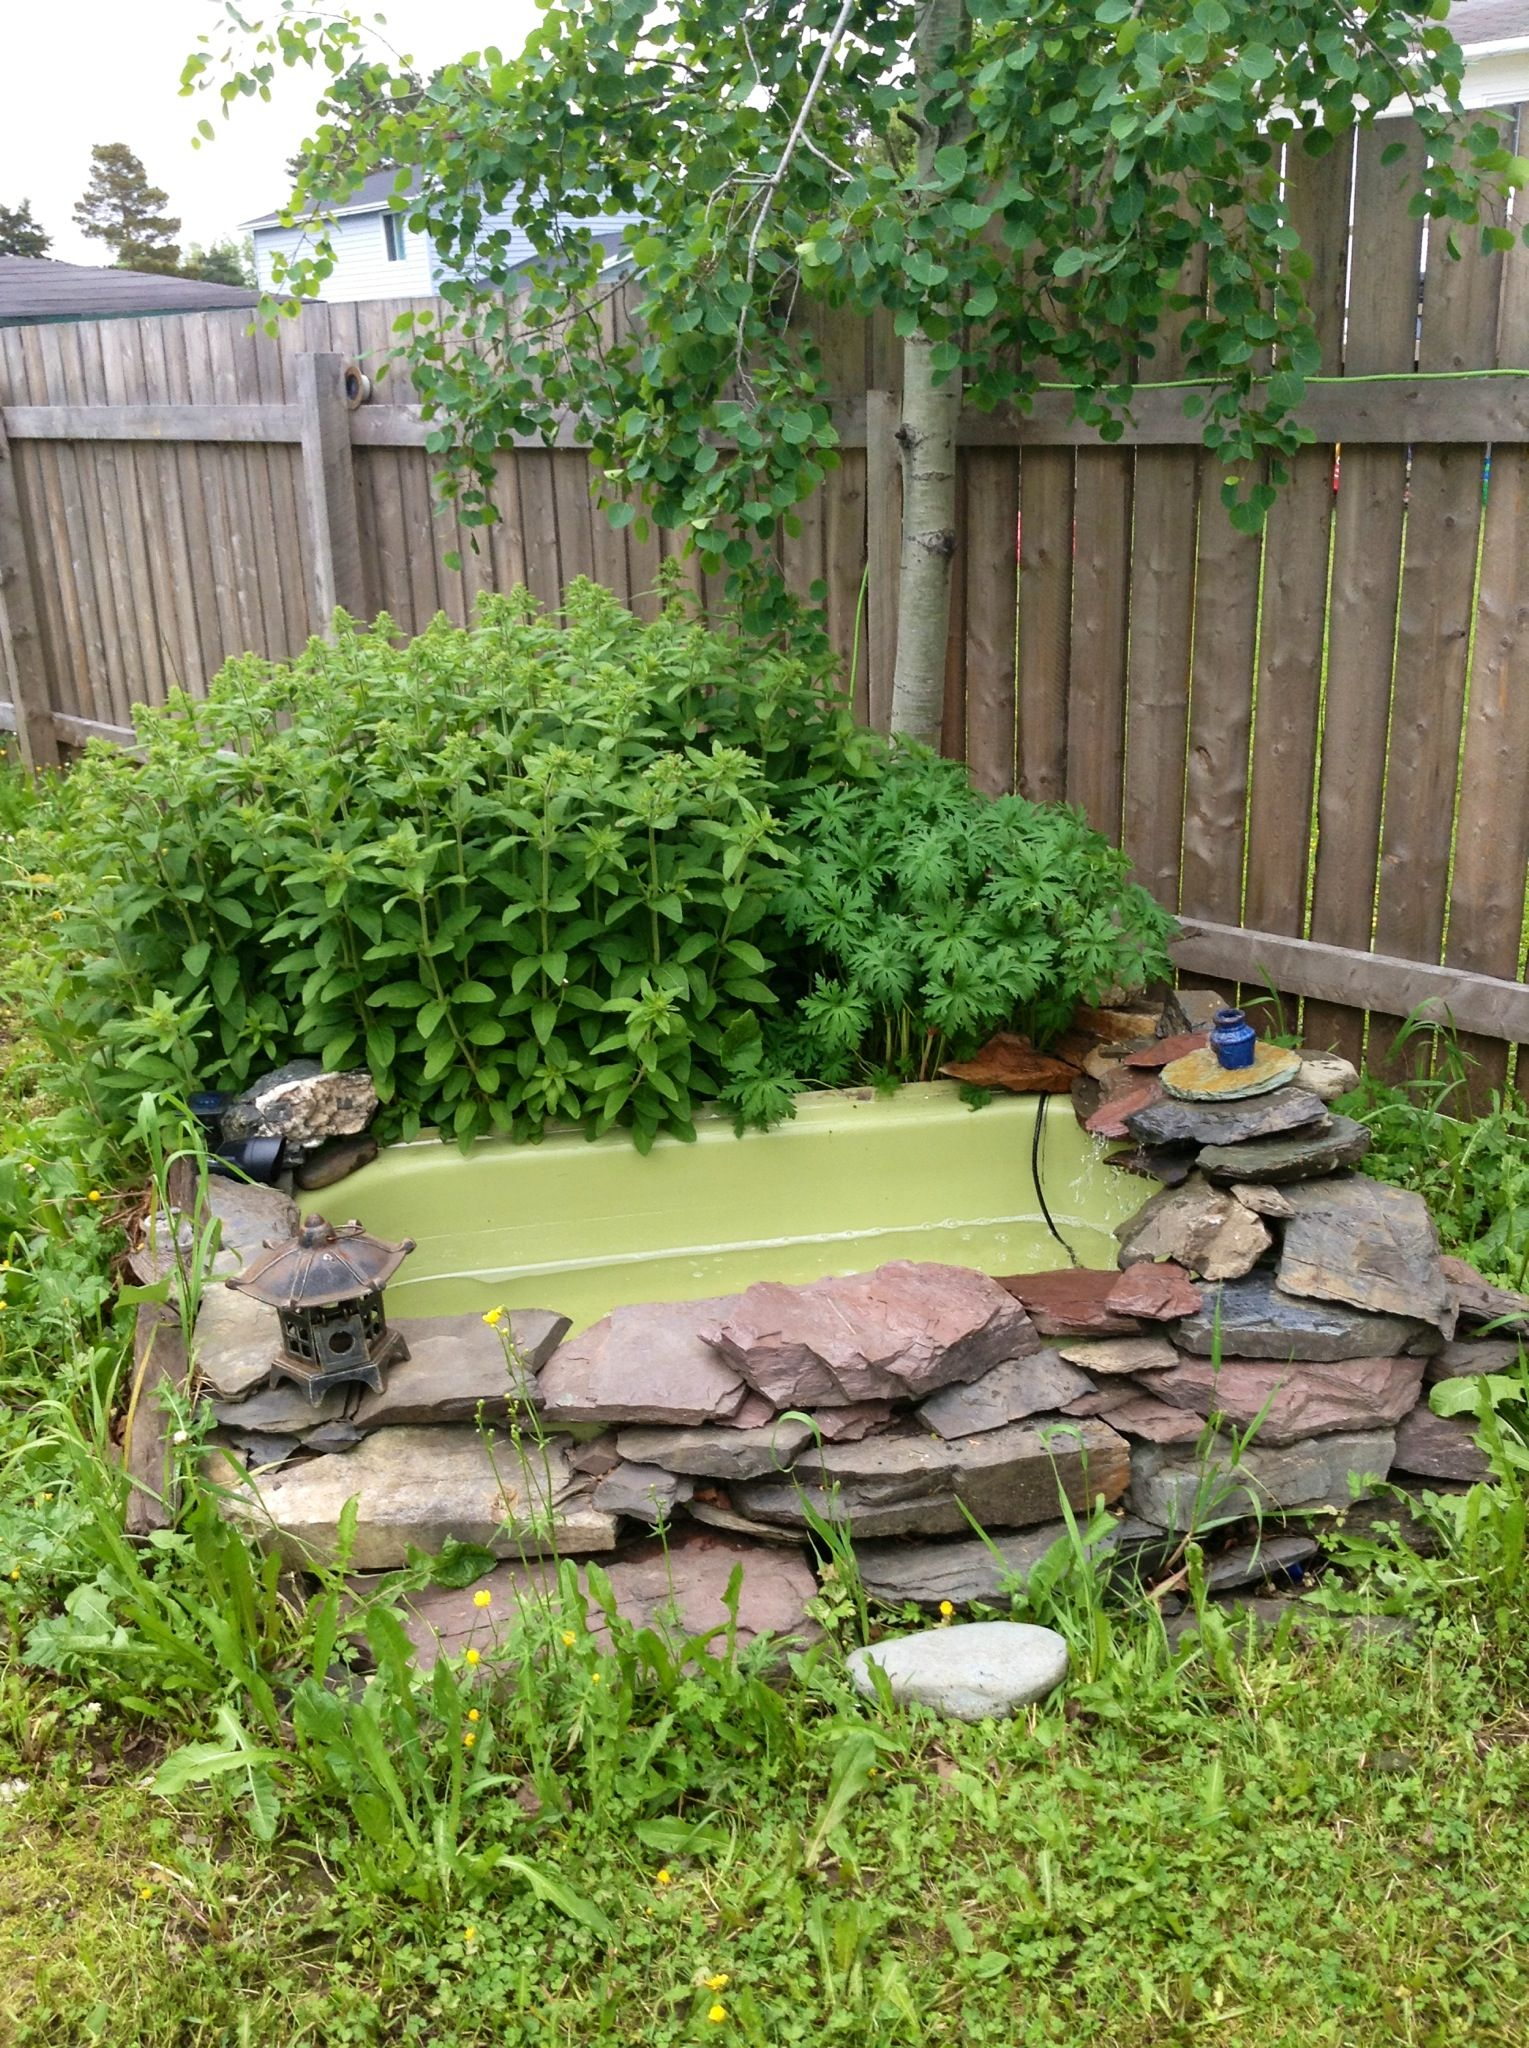 Pin By Marlene On My Own Creations Garden Water Fountains Pond Water Features Outdoor Gardens